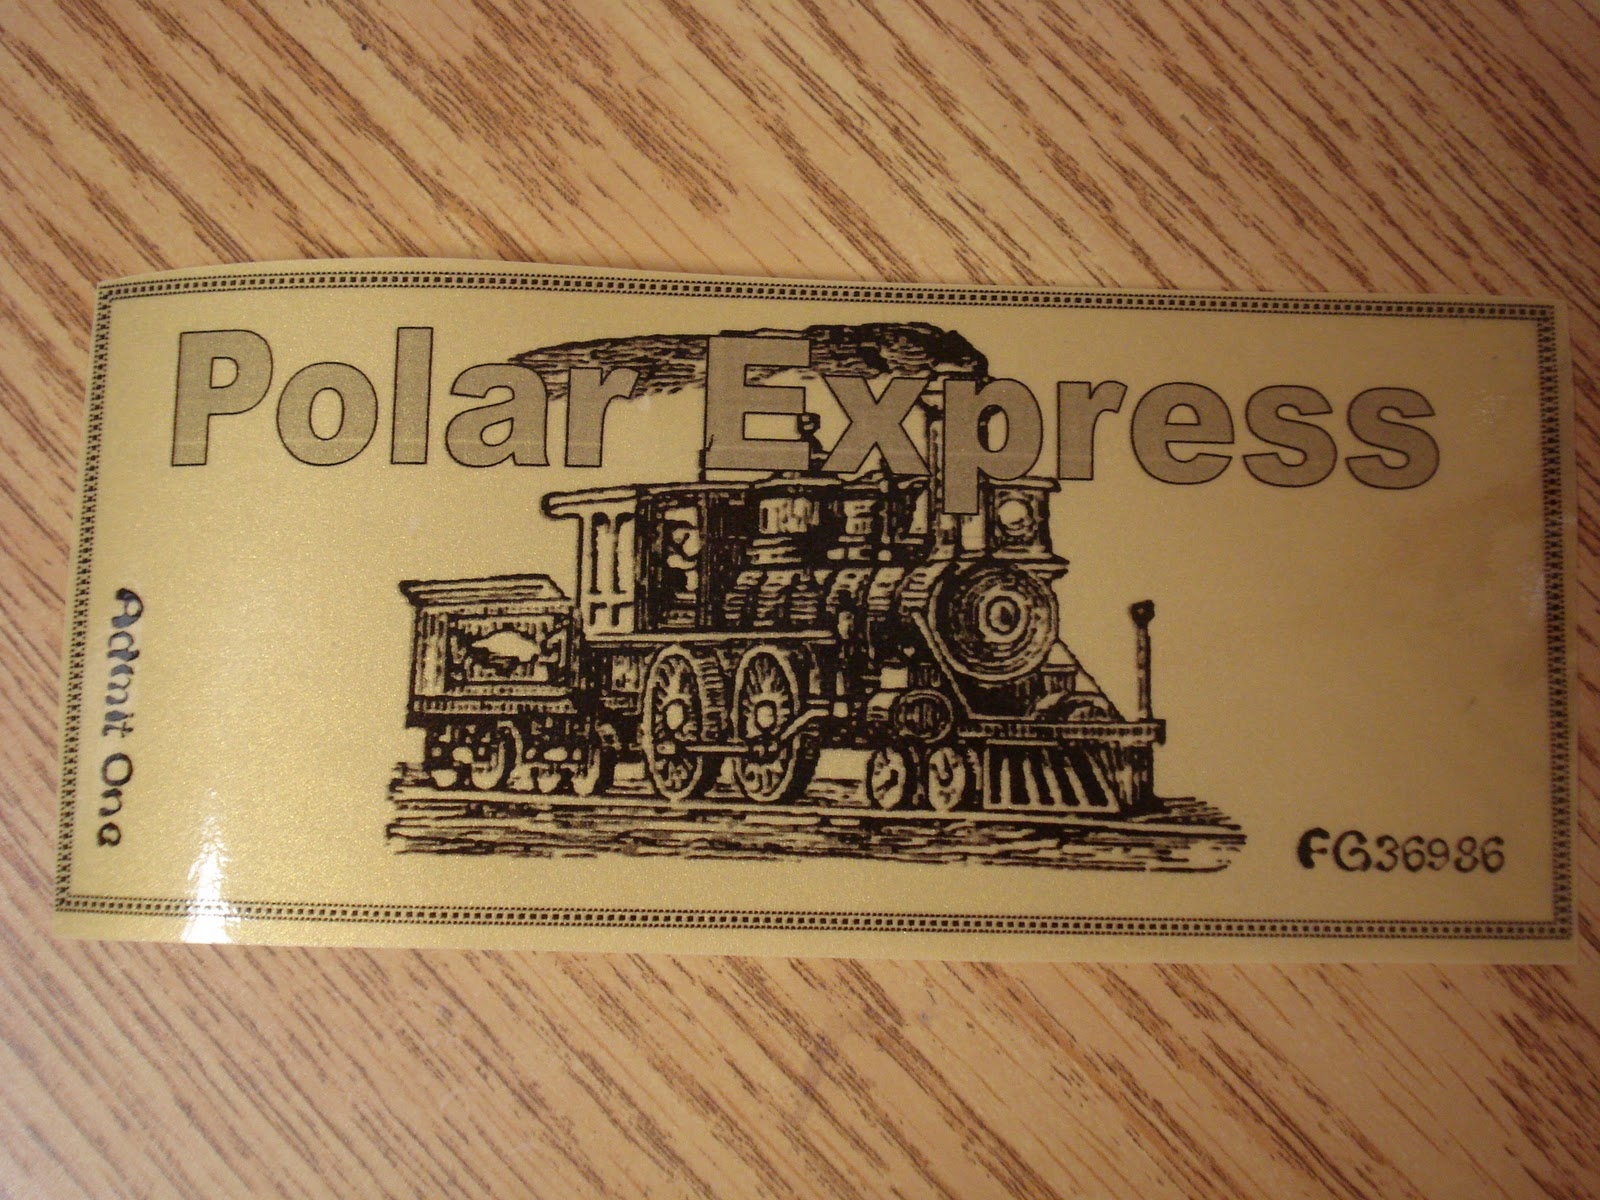 Polar express golden ticket new calendar template site for Polar express golden ticket template